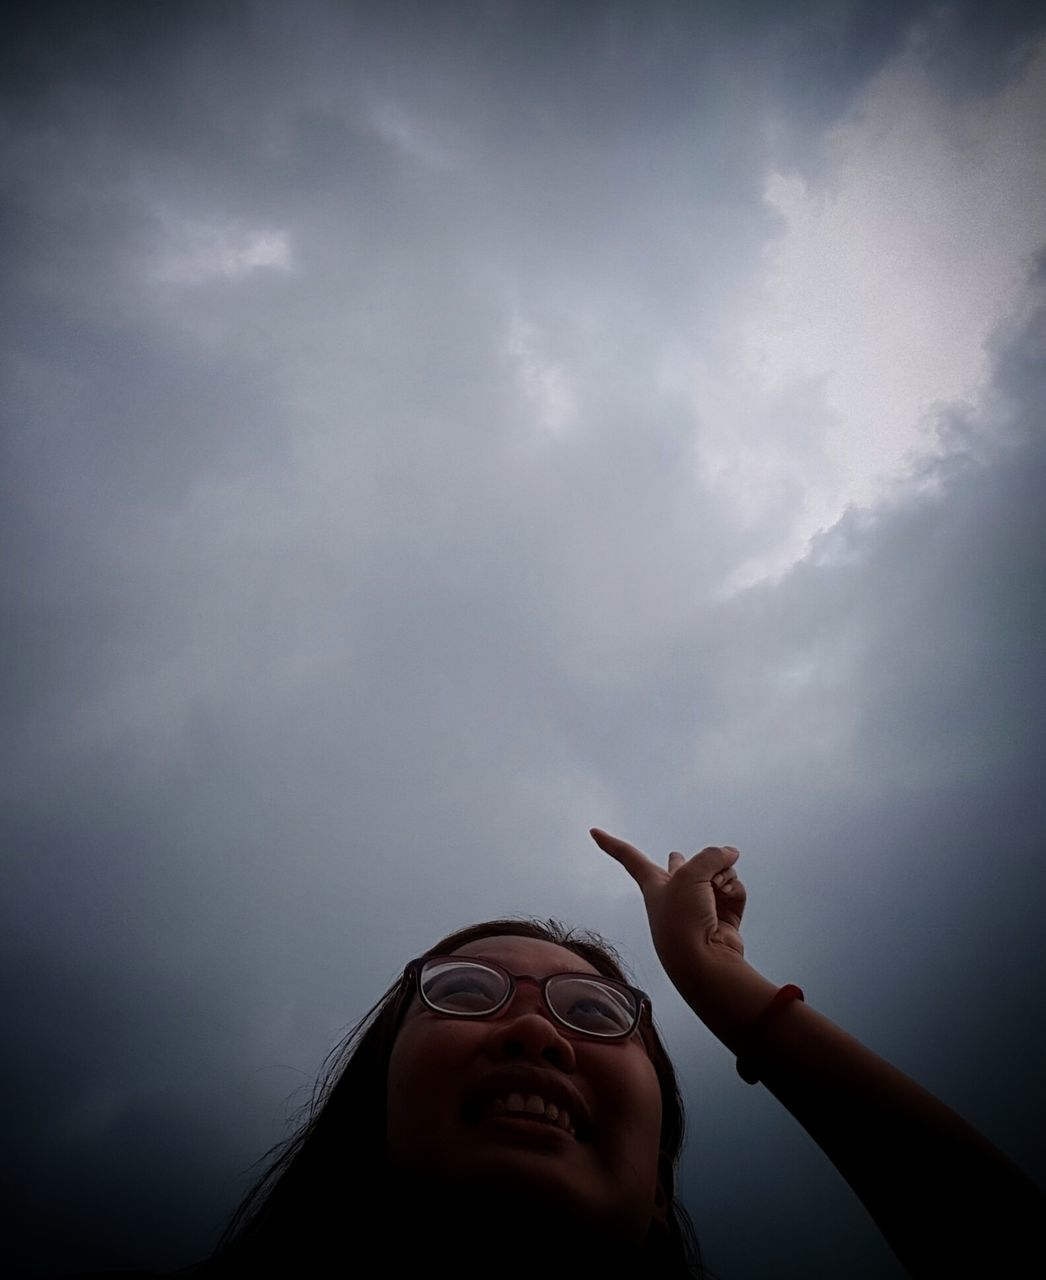 sky, one person, low angle view, cloud - sky, real people, gesturing, outdoors, day, headshot, human body part, young women, human hand, nature, young adult, close-up, people